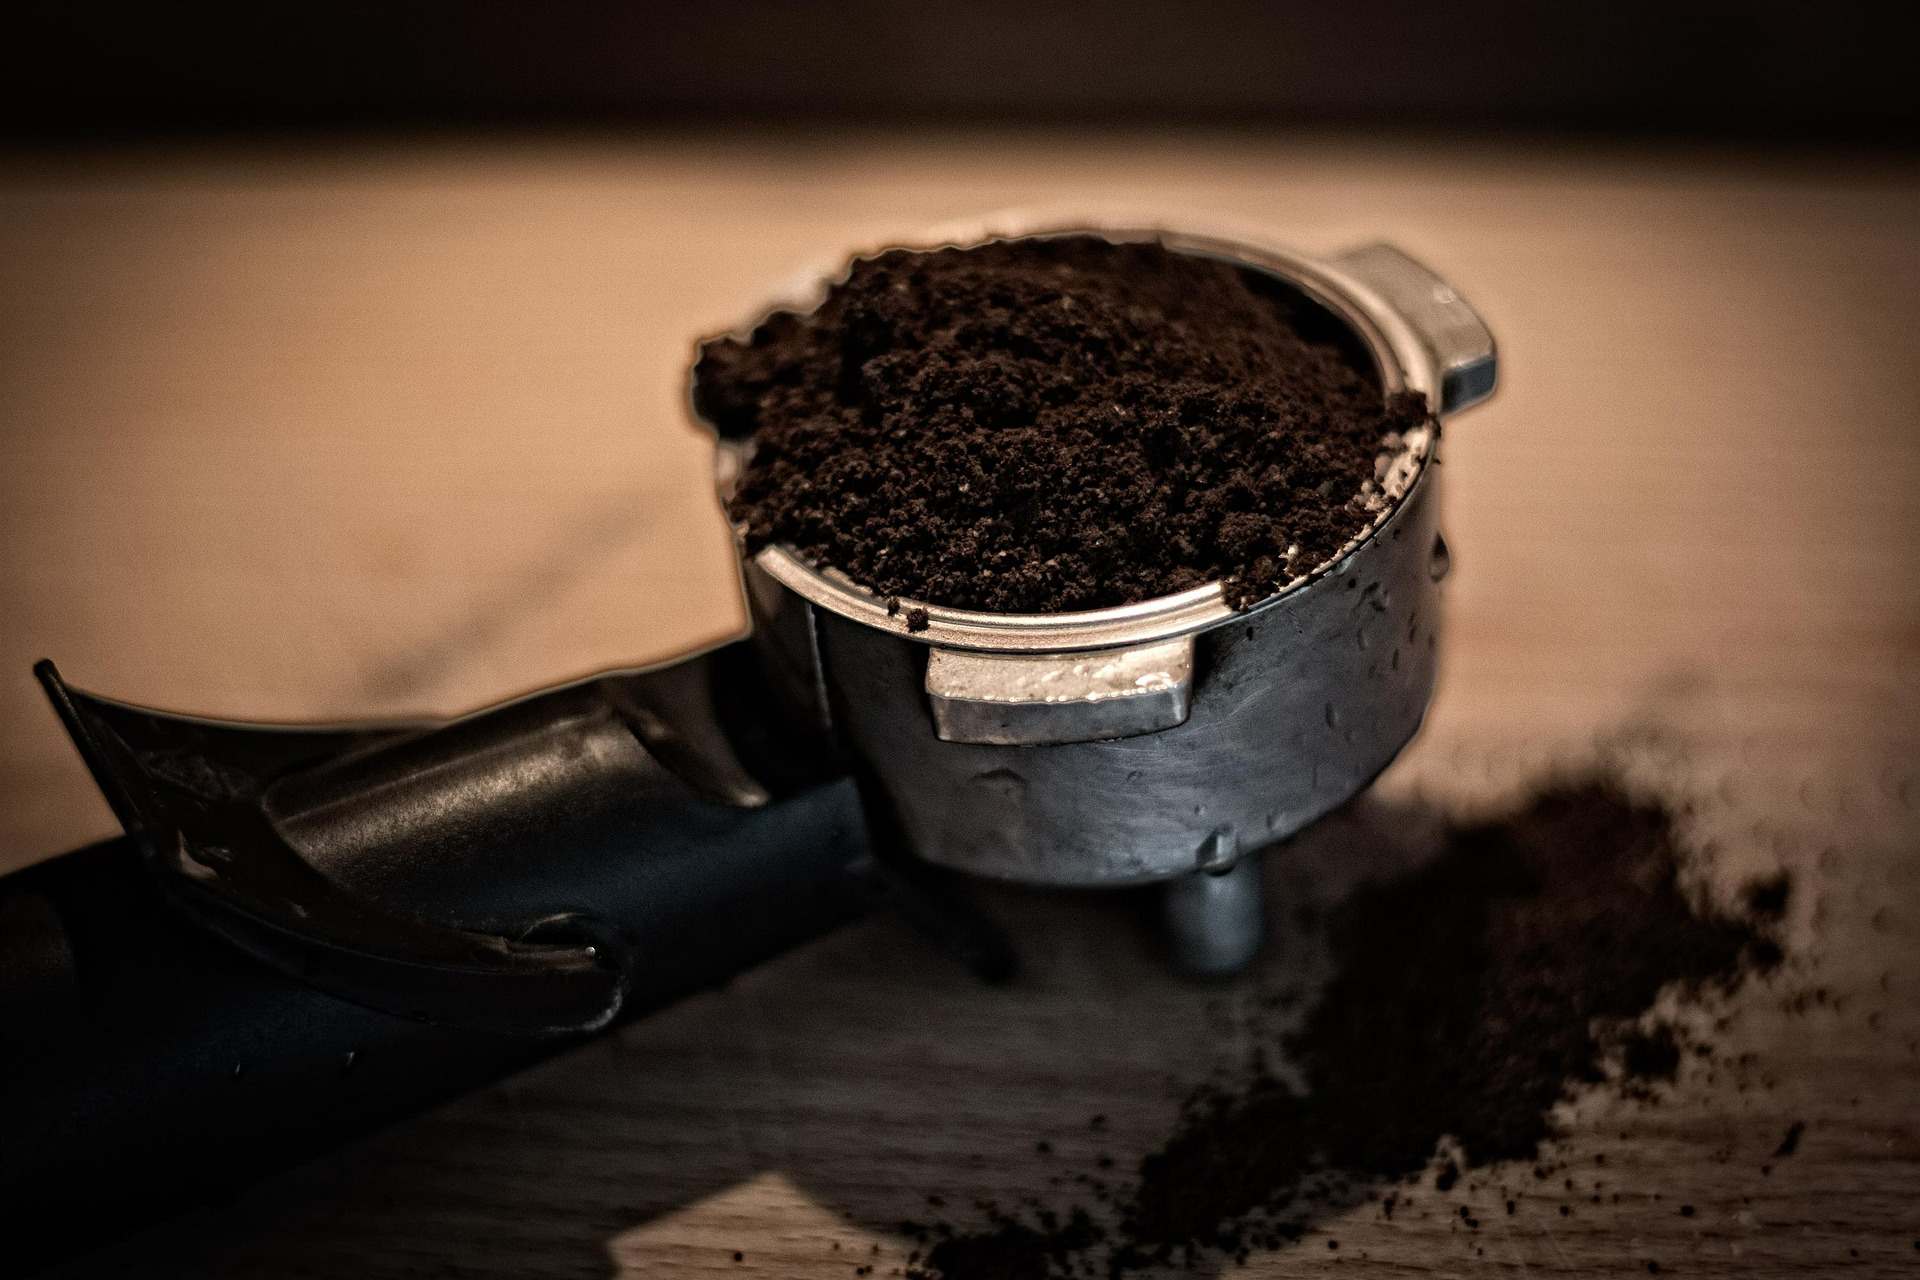 10 Ingenious Uses for Coffee Bean Grounds